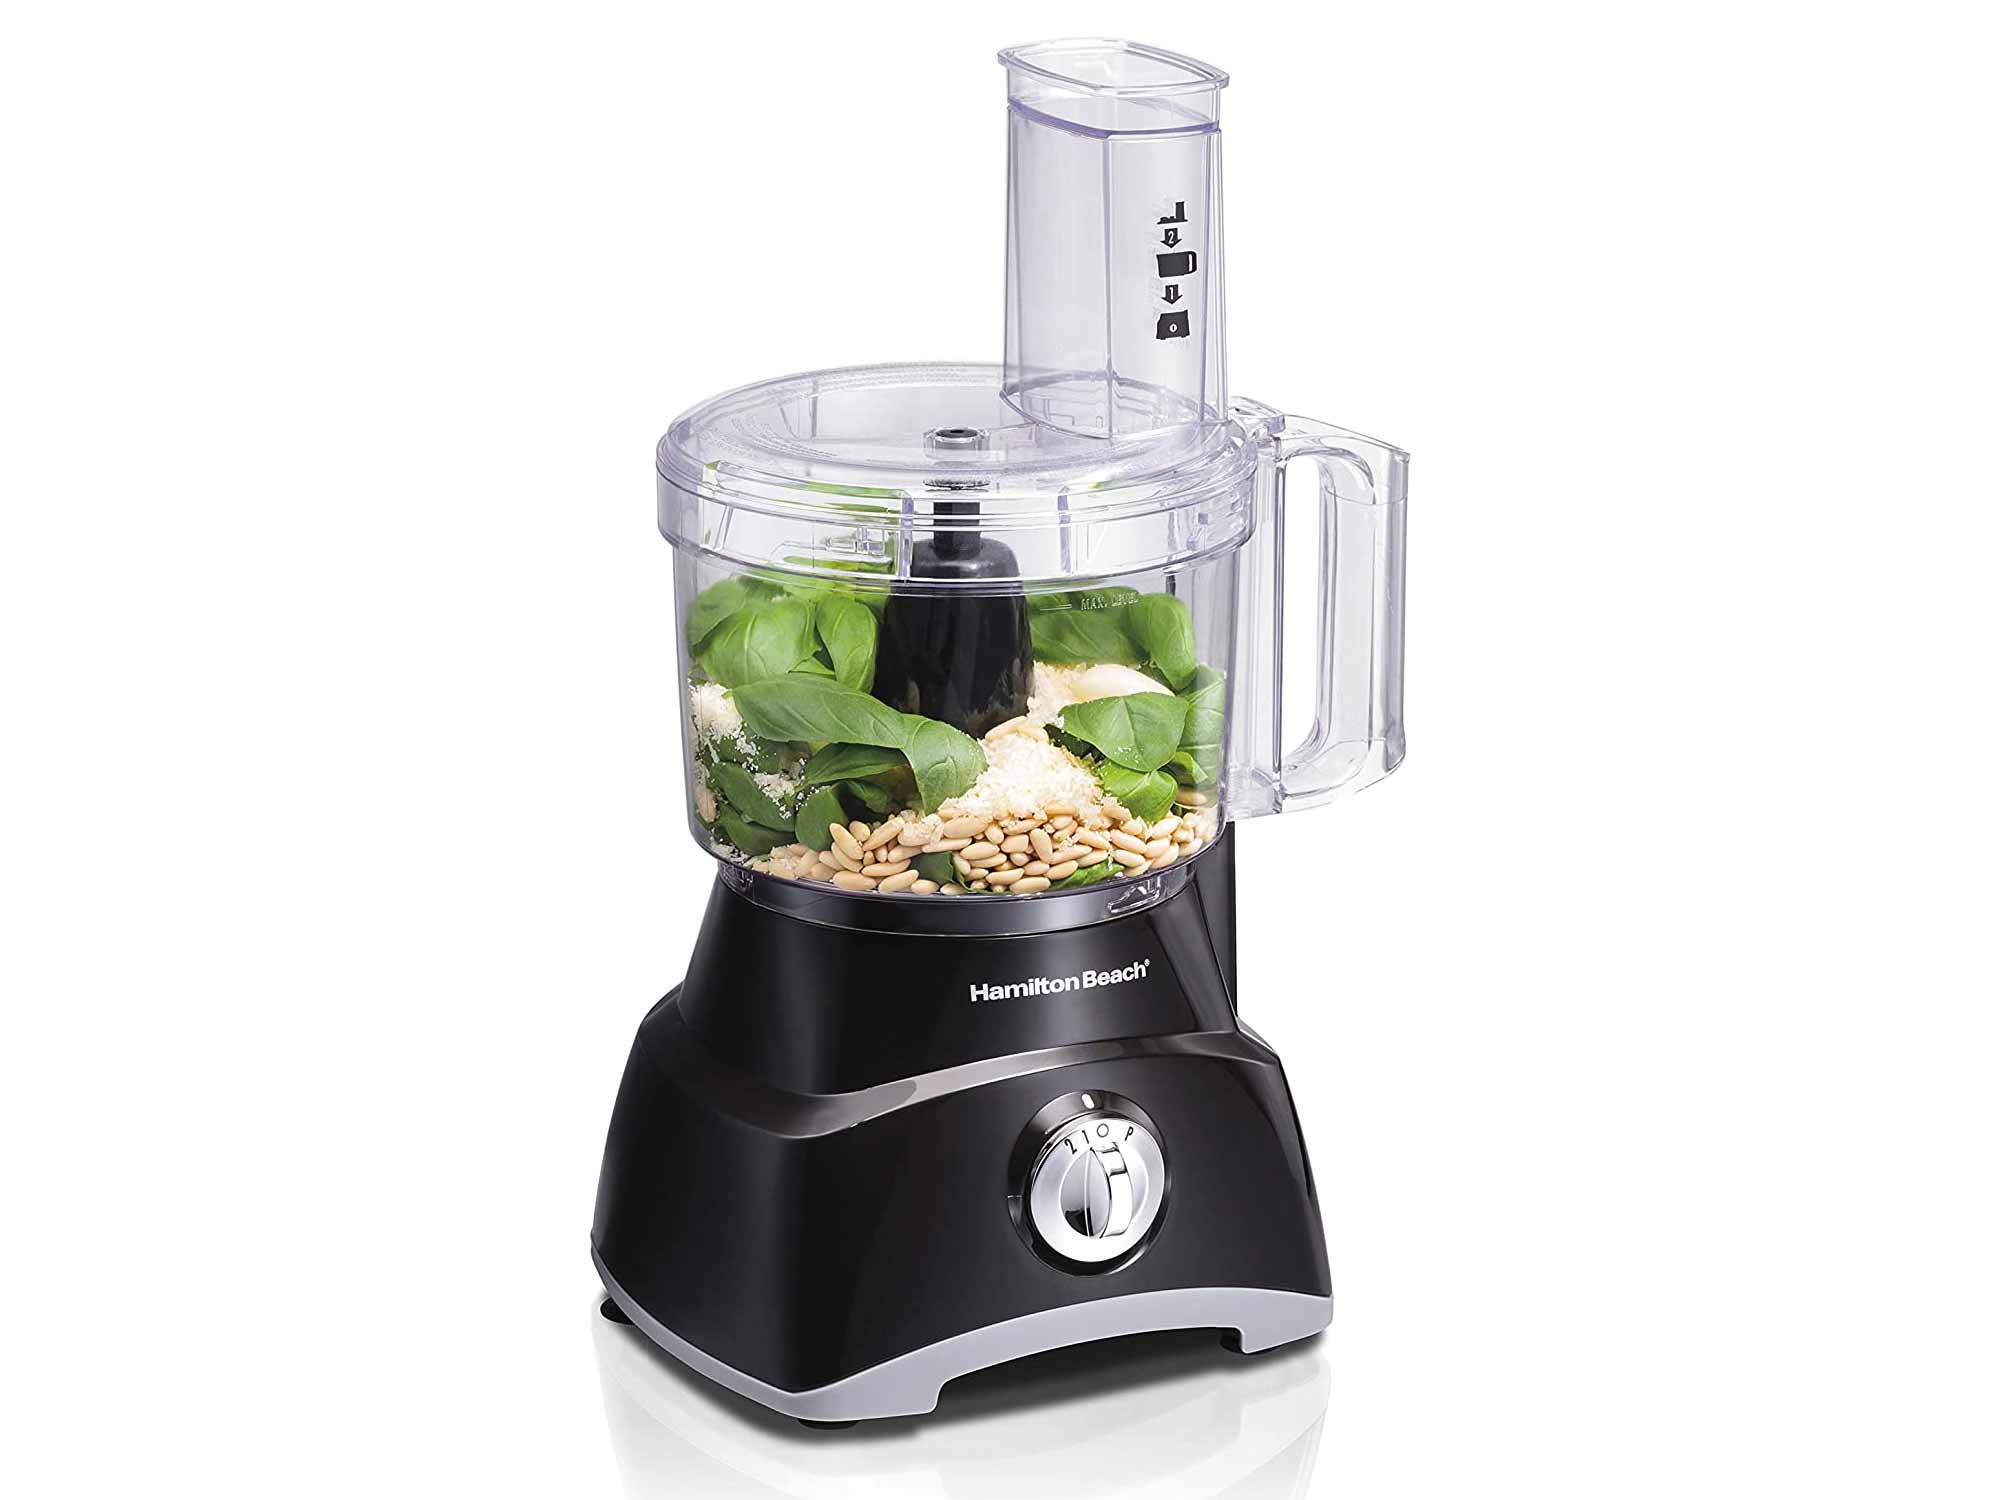 Hamilton Beach 8-Cup Compact Food Processor & Vegetable Chopper for Slicing, Shredding, Mincing, and Puree, 450 Watts, Black